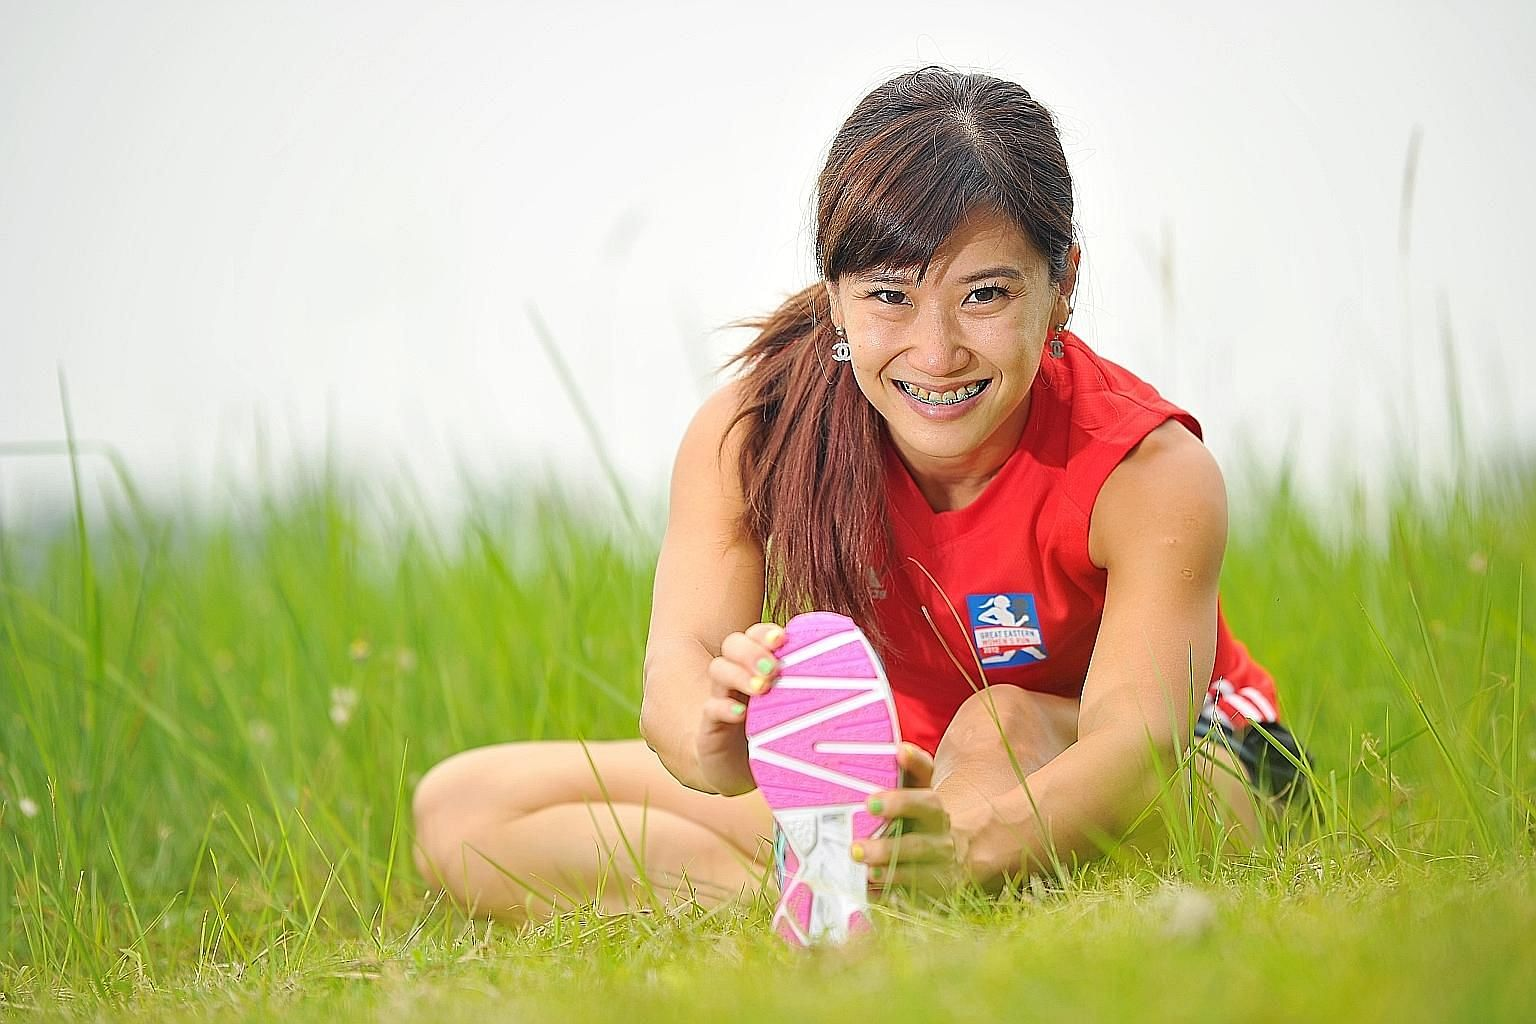 Rachel Yang needs to sprint just about 30m down the vault runway each time in competition. However, she hopes to complete 5km under 45min in the GE Women's Run on Nov 1.